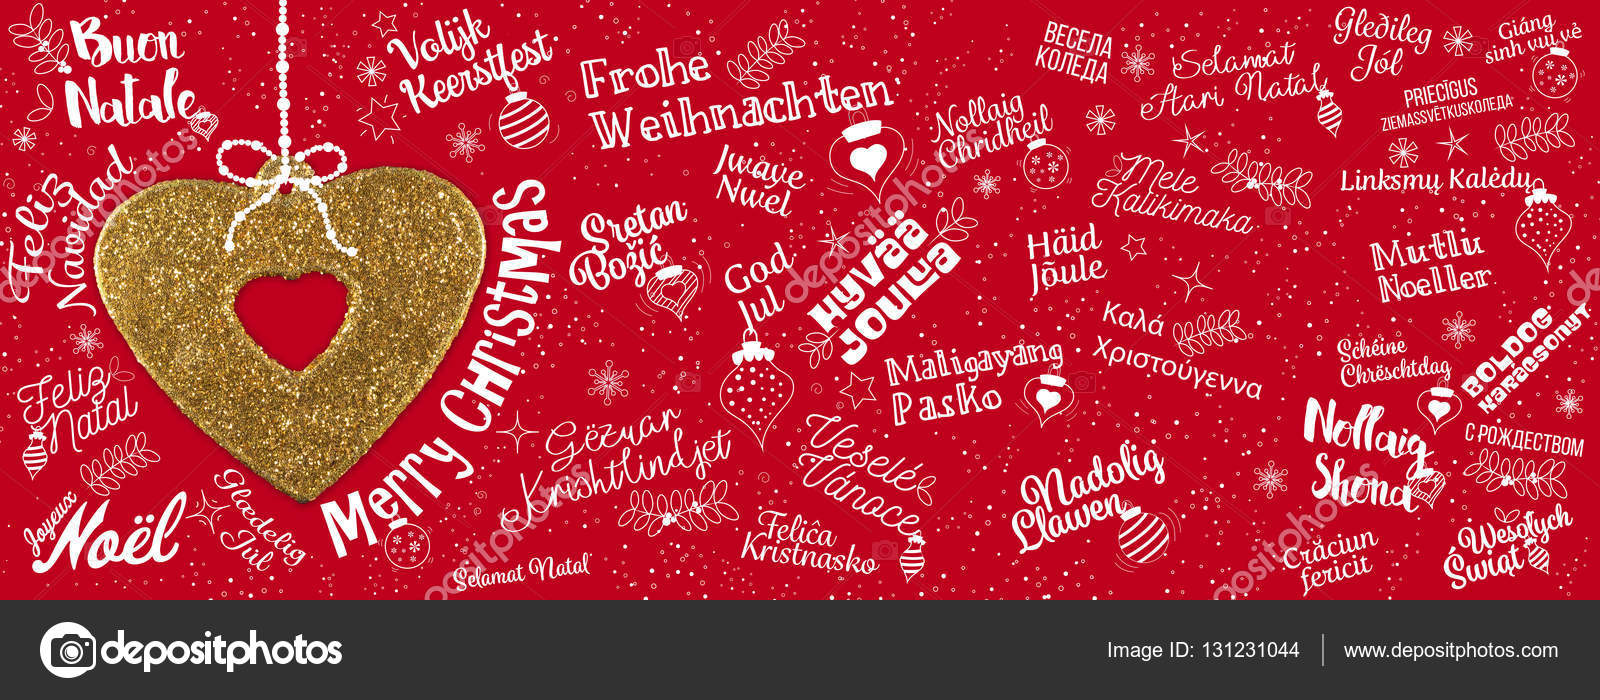 Merry Christmas Greetings Web Banner From World Stock Photo Mm